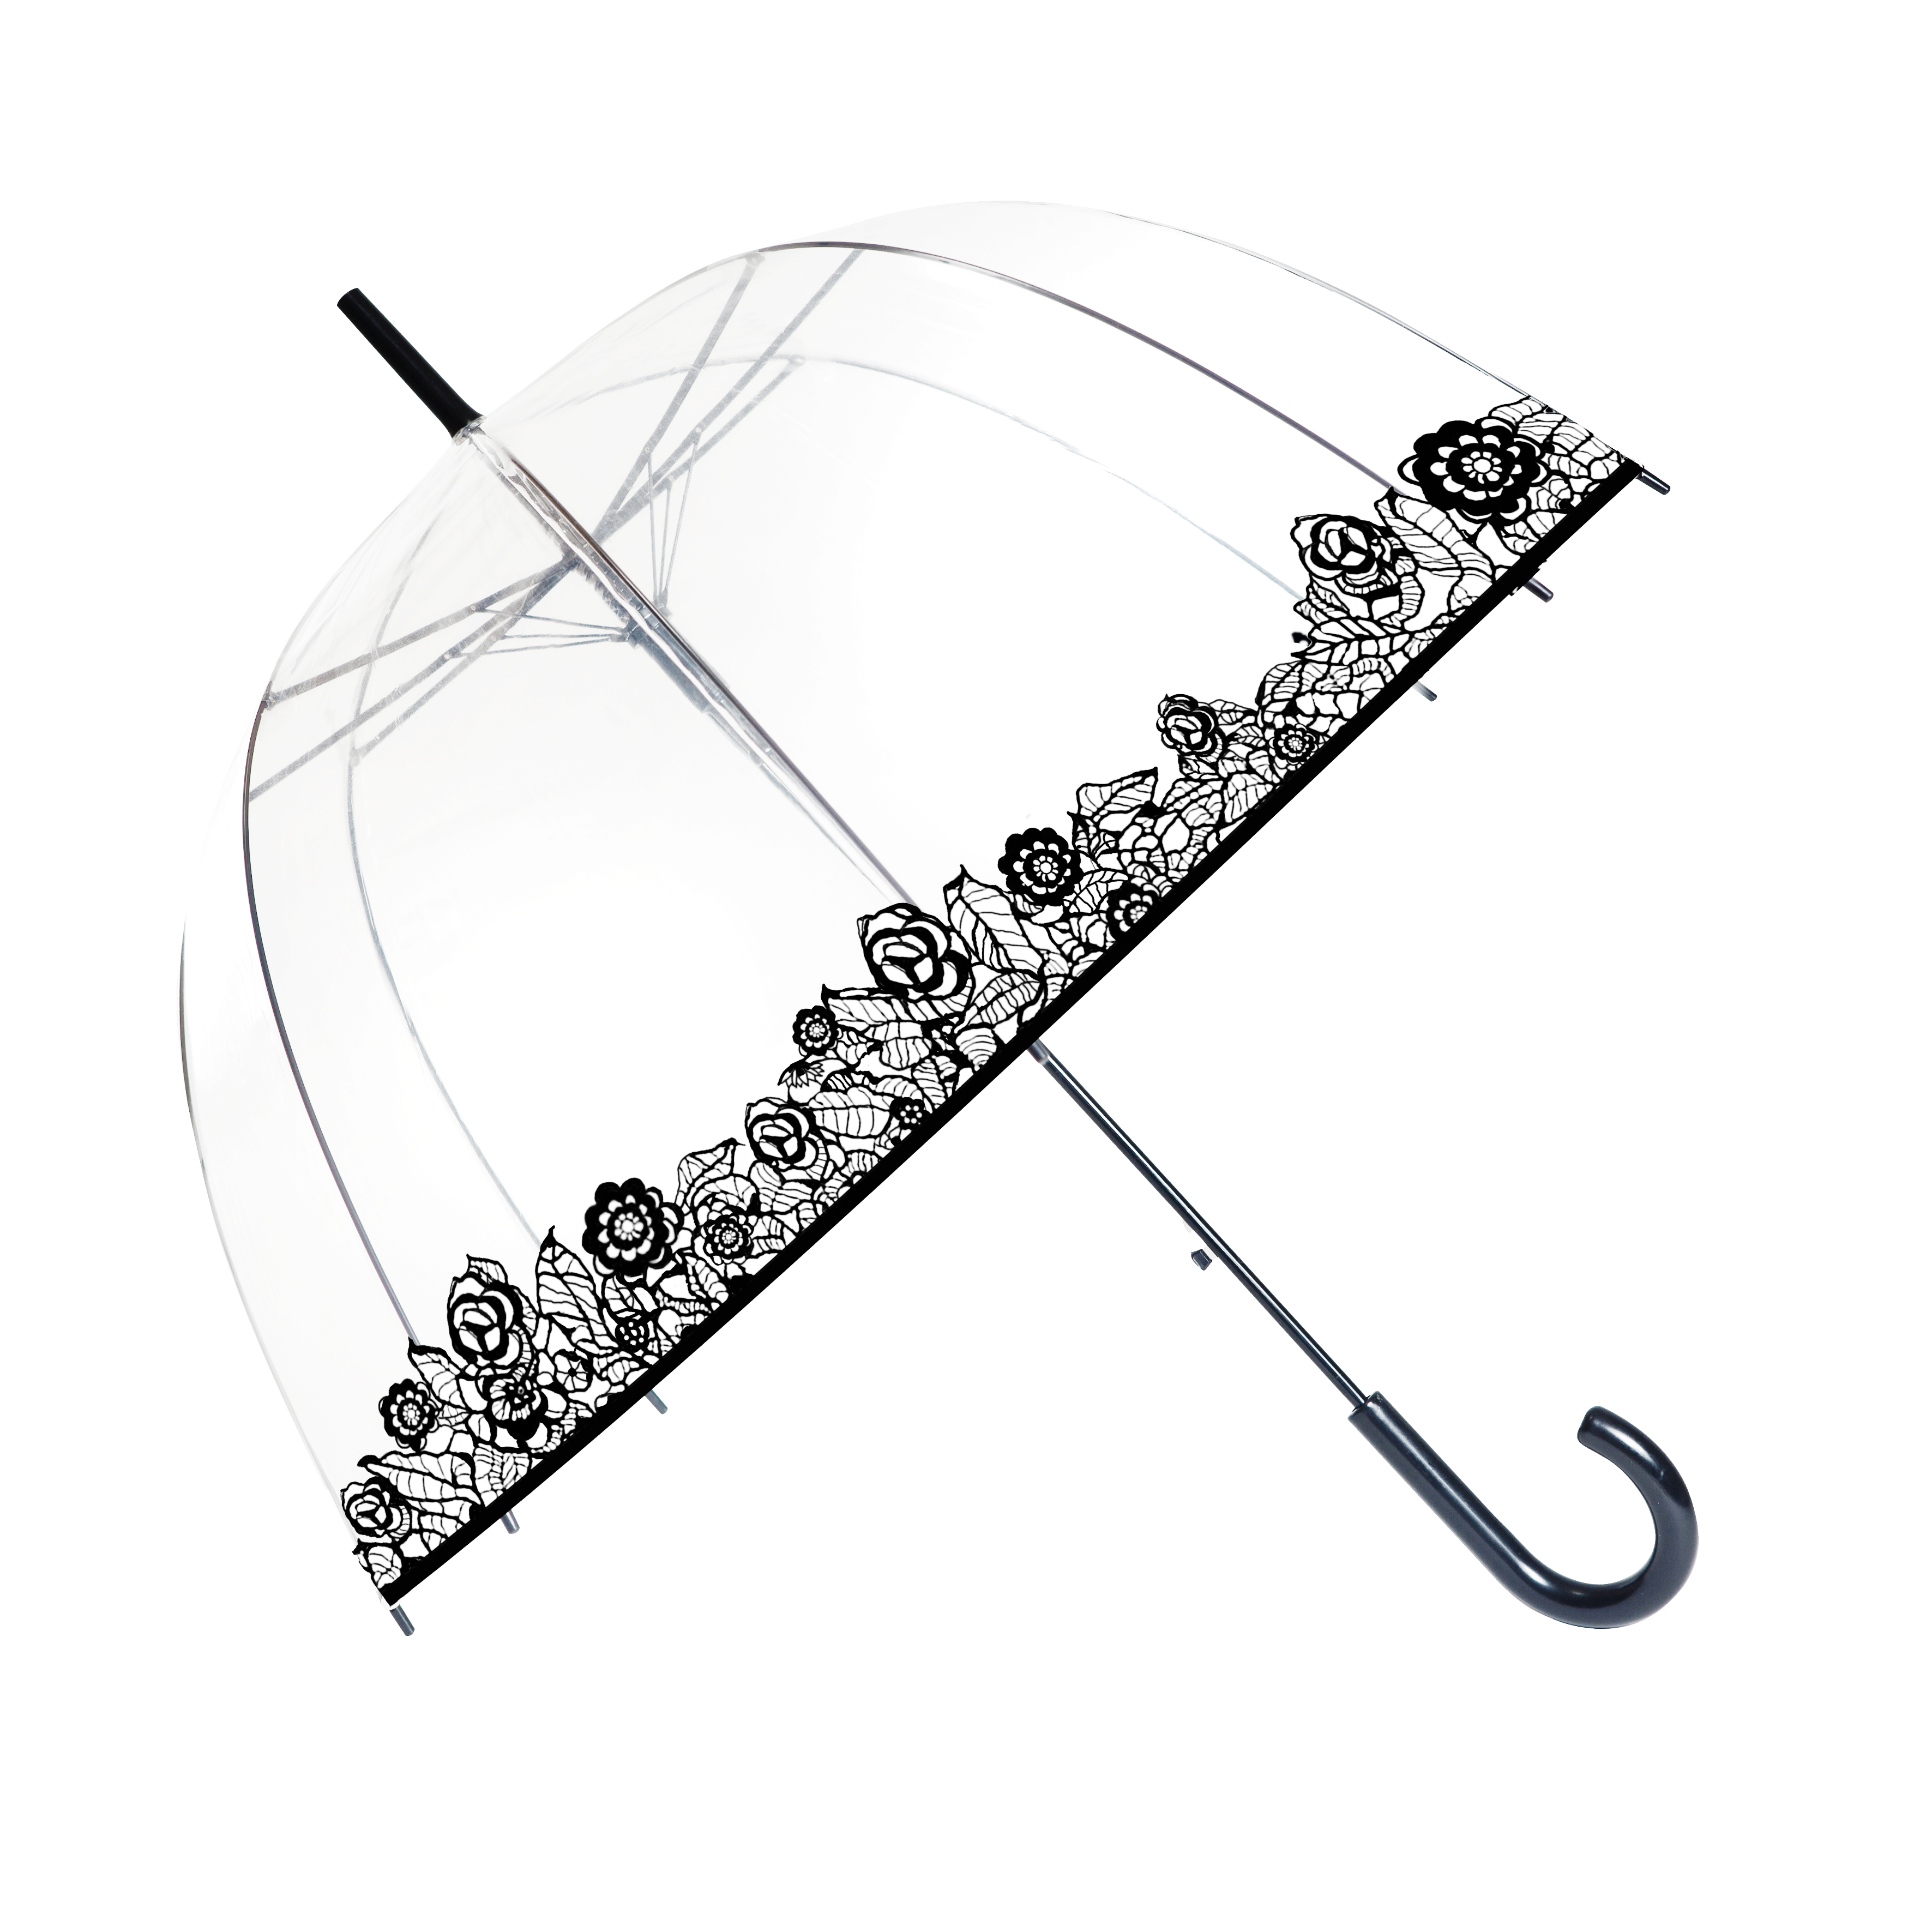 parapluie cloche femme transparent avec liseret de fleurs noires kausia. Black Bedroom Furniture Sets. Home Design Ideas